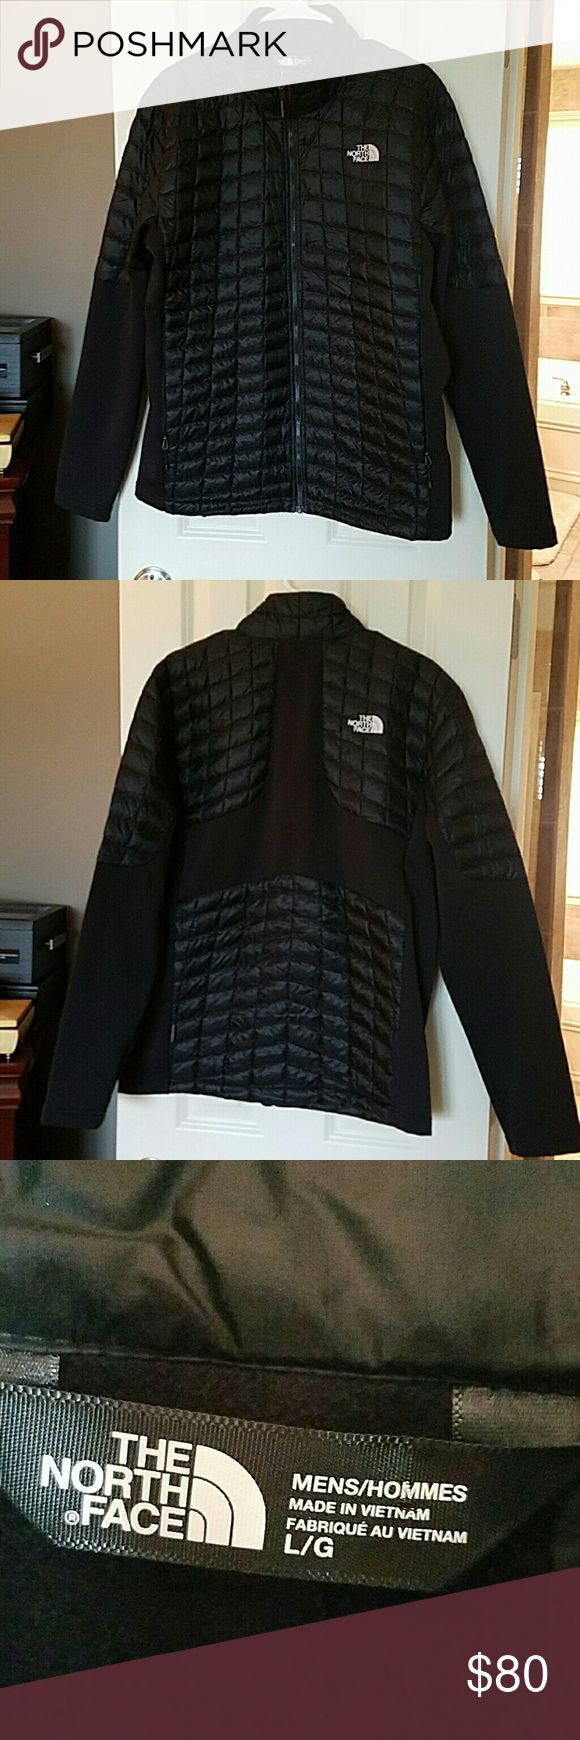 The North Face men's jacket Black BNWT The North Face men's jacket. Never worn. Excellent condition The North Face Jackets & Coats